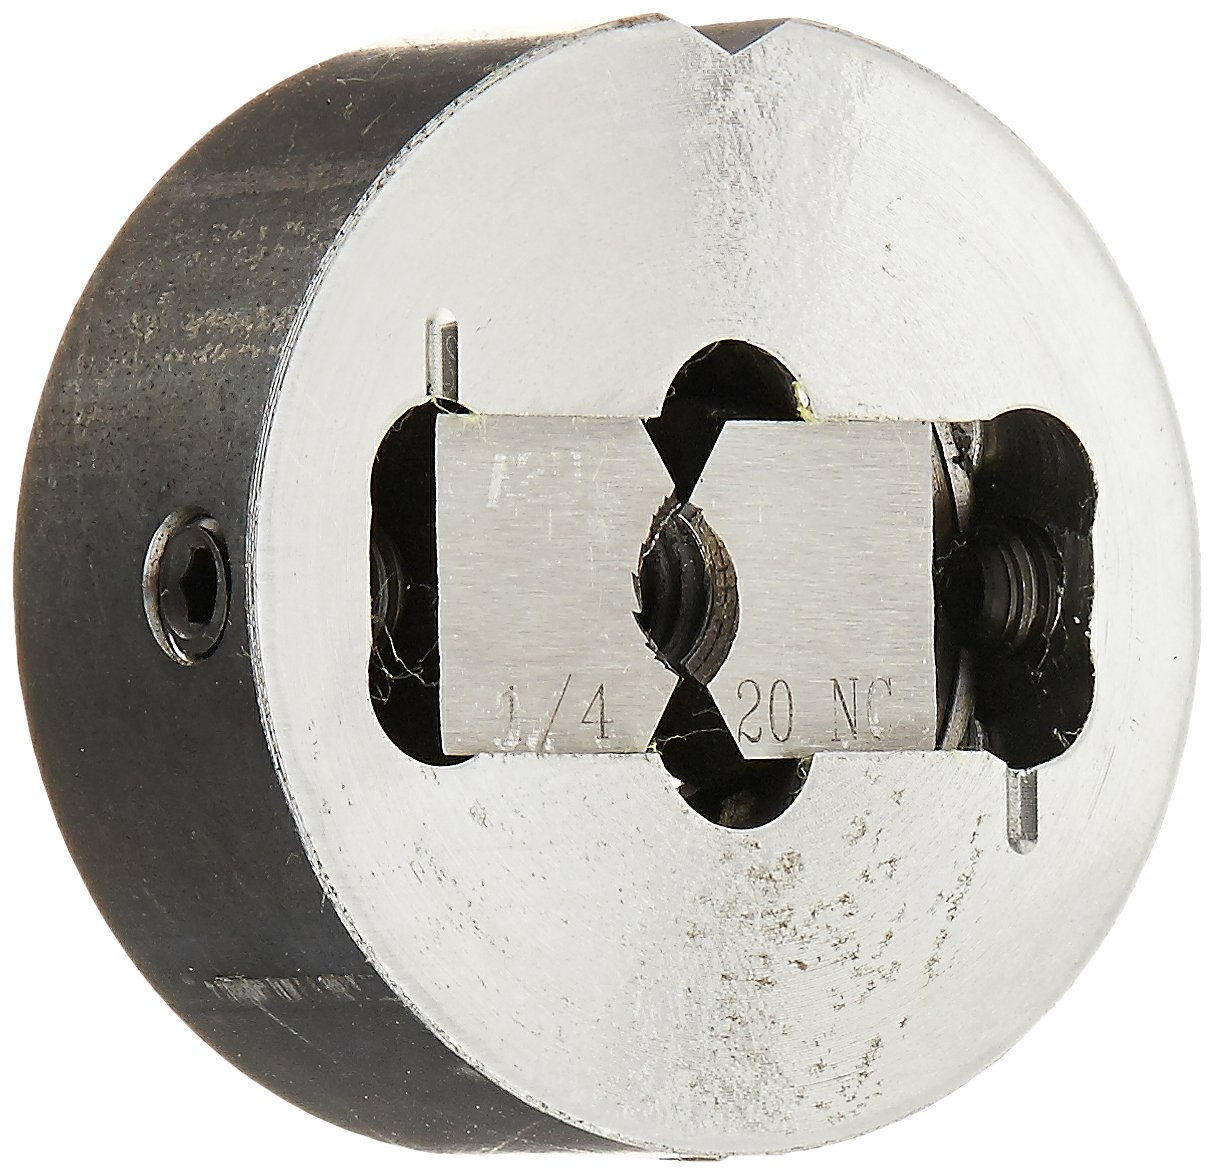 Cle-Line C66788 Quick-Set Collet Assembly with 2-Piece Die by Cle-line